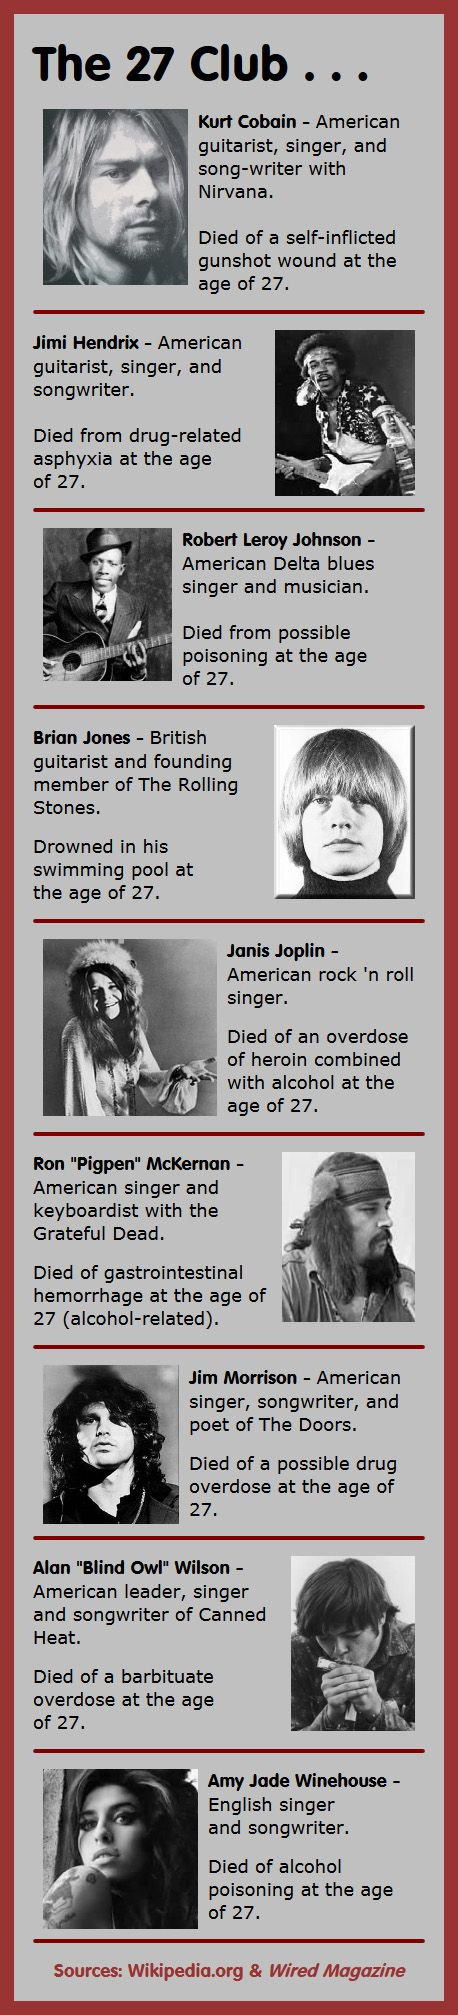 Here are 9 members of the 27 Club – musicians who have died in tragic and mysterious circumstances at the age of 27.